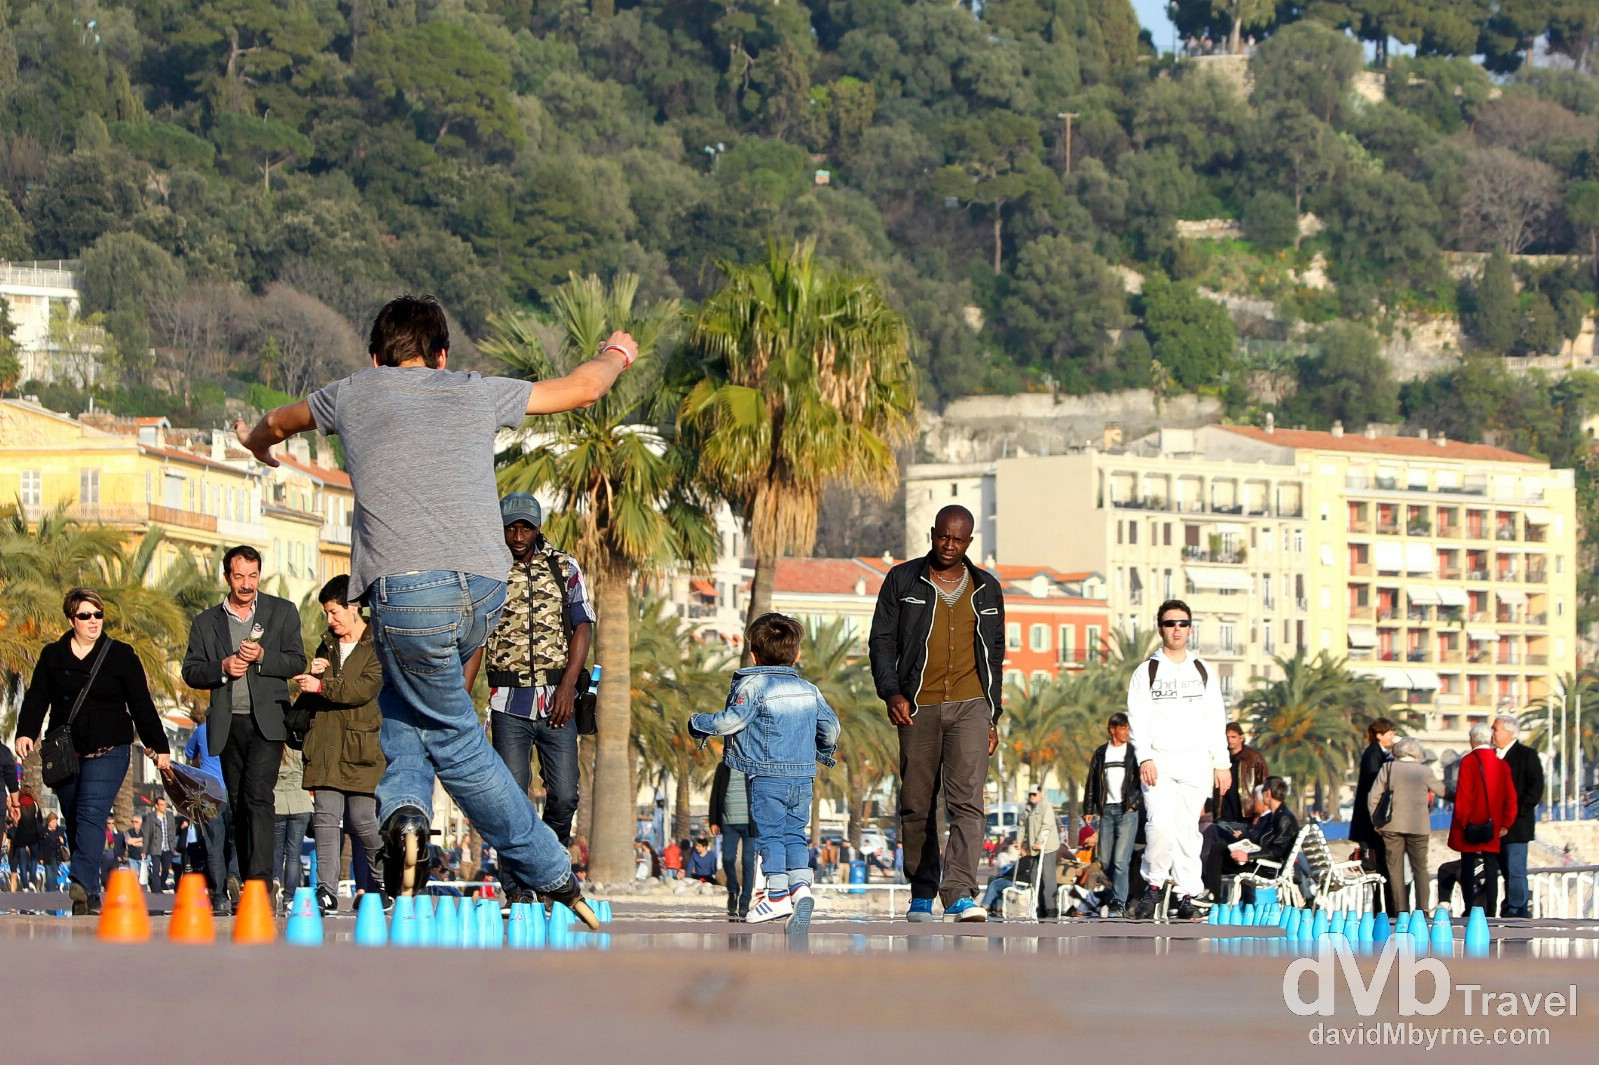 Activity on the beachfront Promenade des Anglais, Nice, Côte d'Azur, France. March 14, 2014.